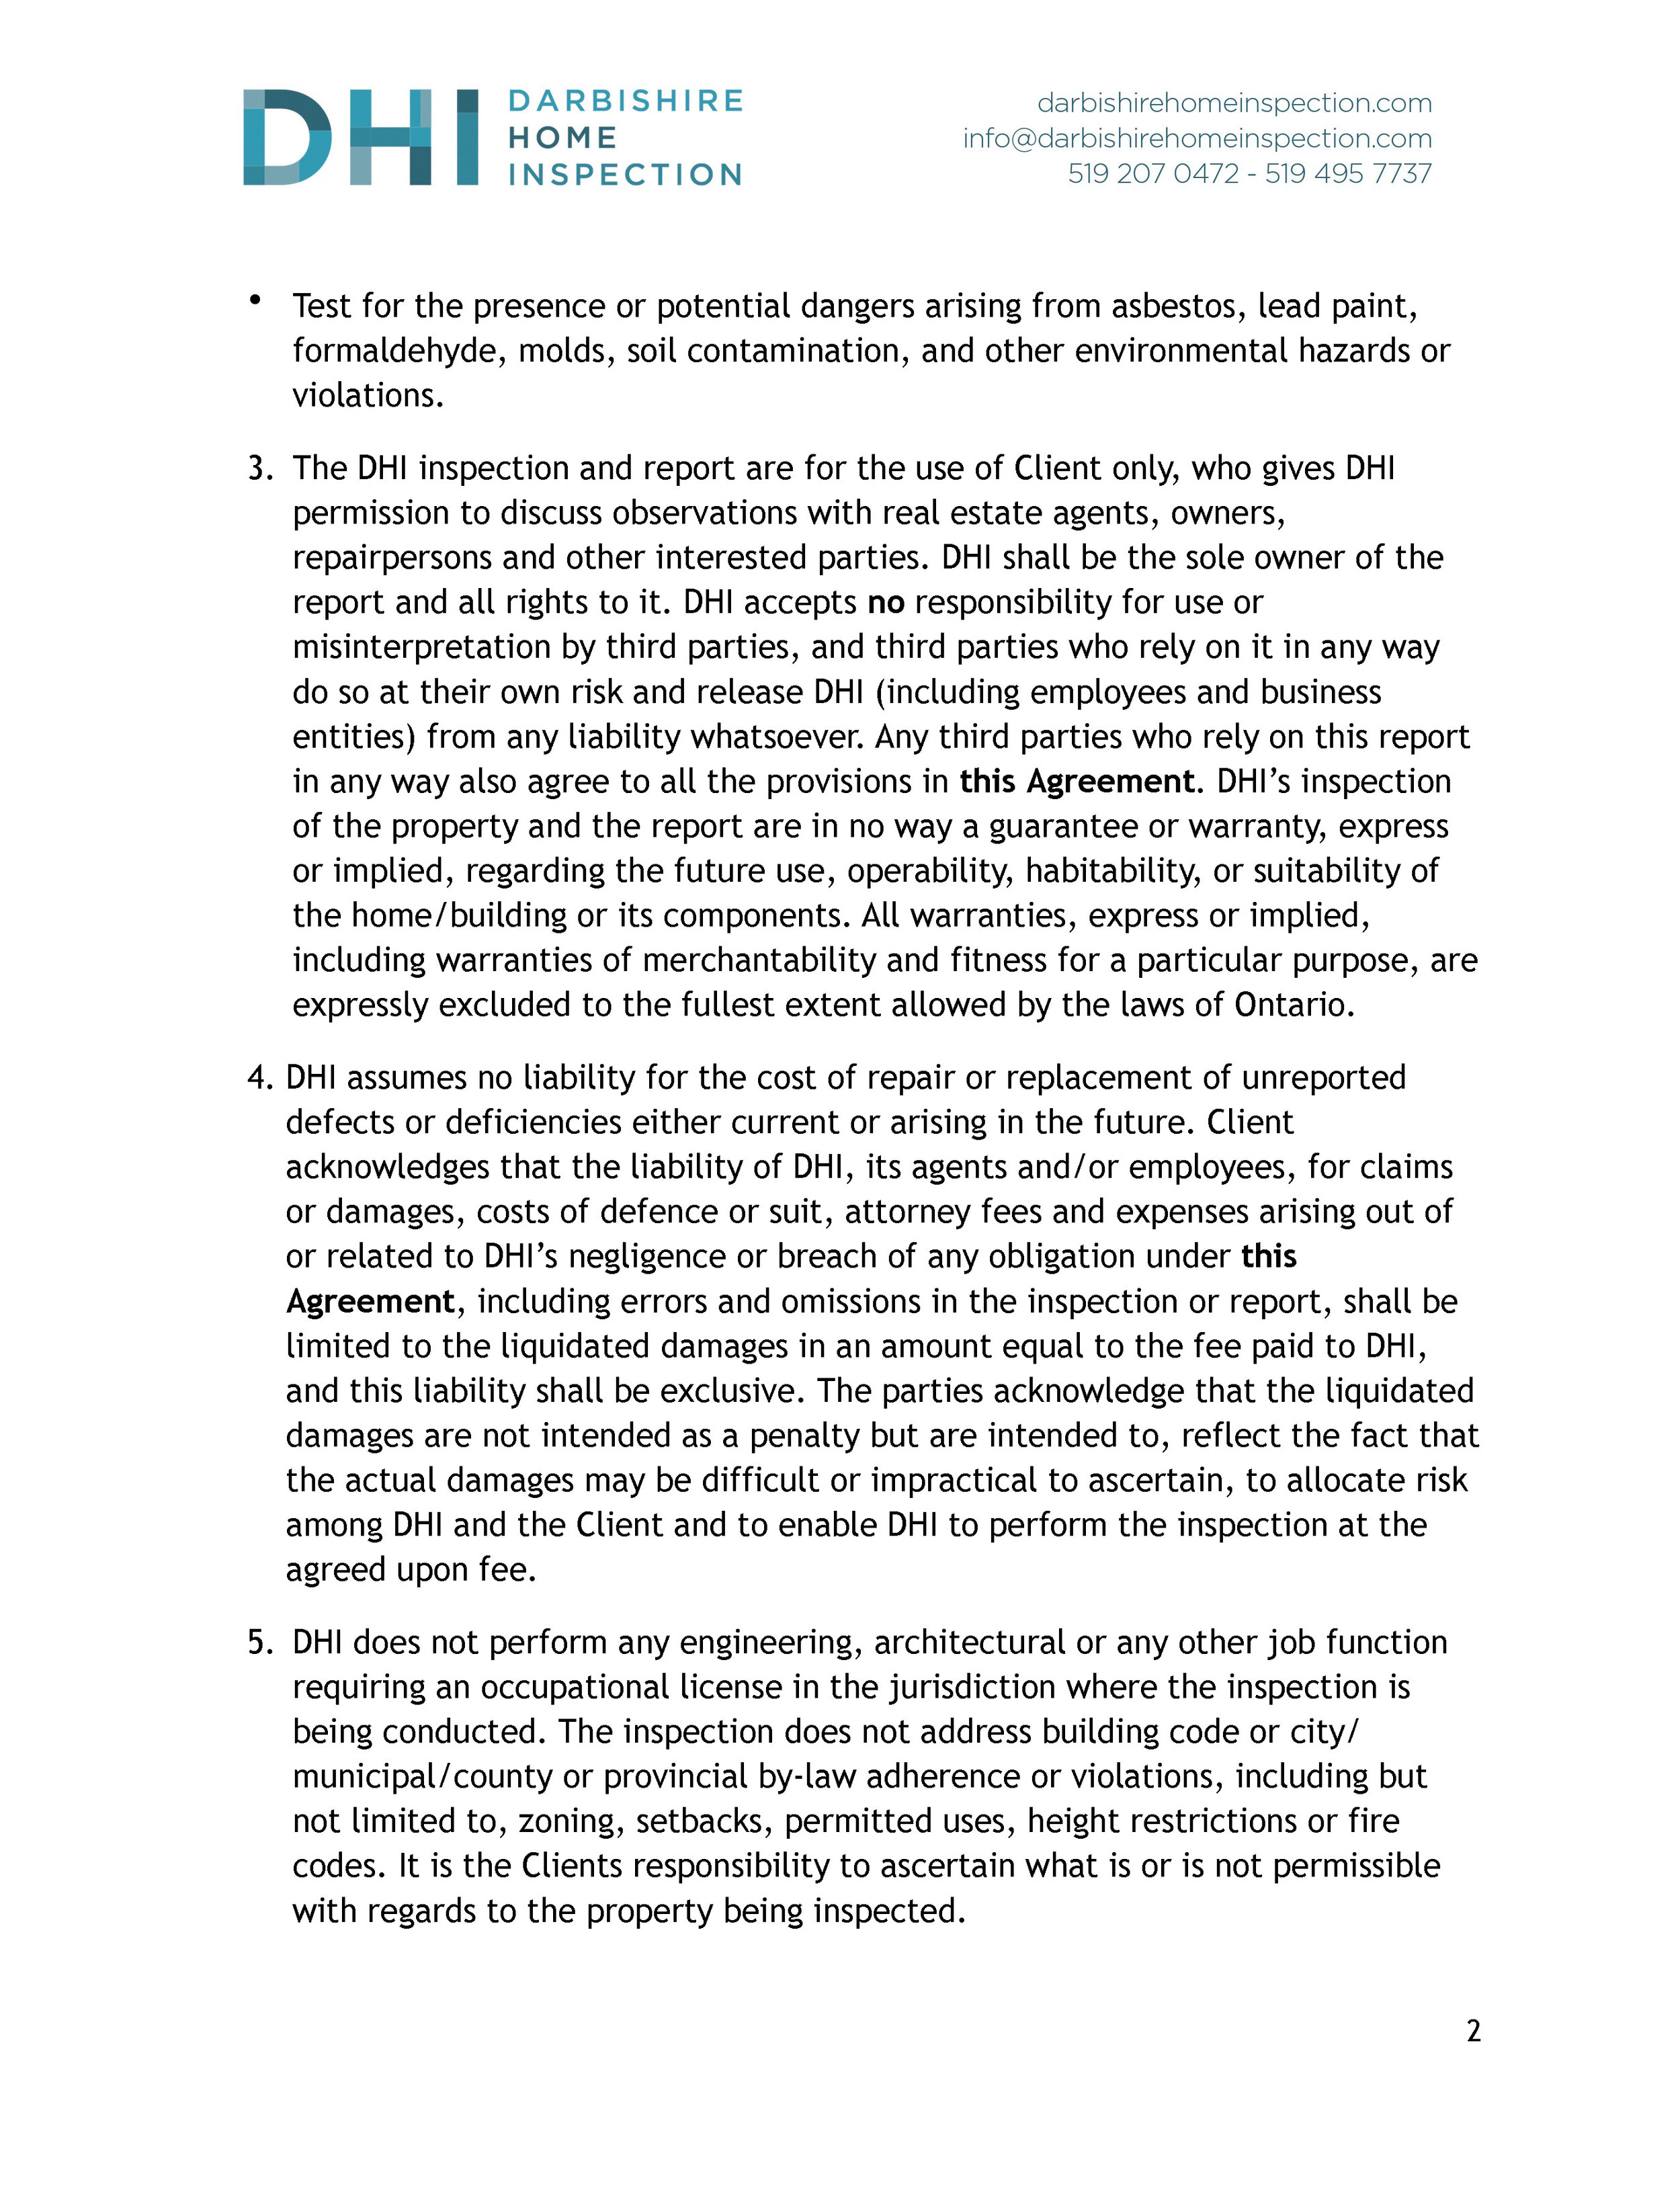 Darbishire Home Inspection Agreement_Page_2.jpg